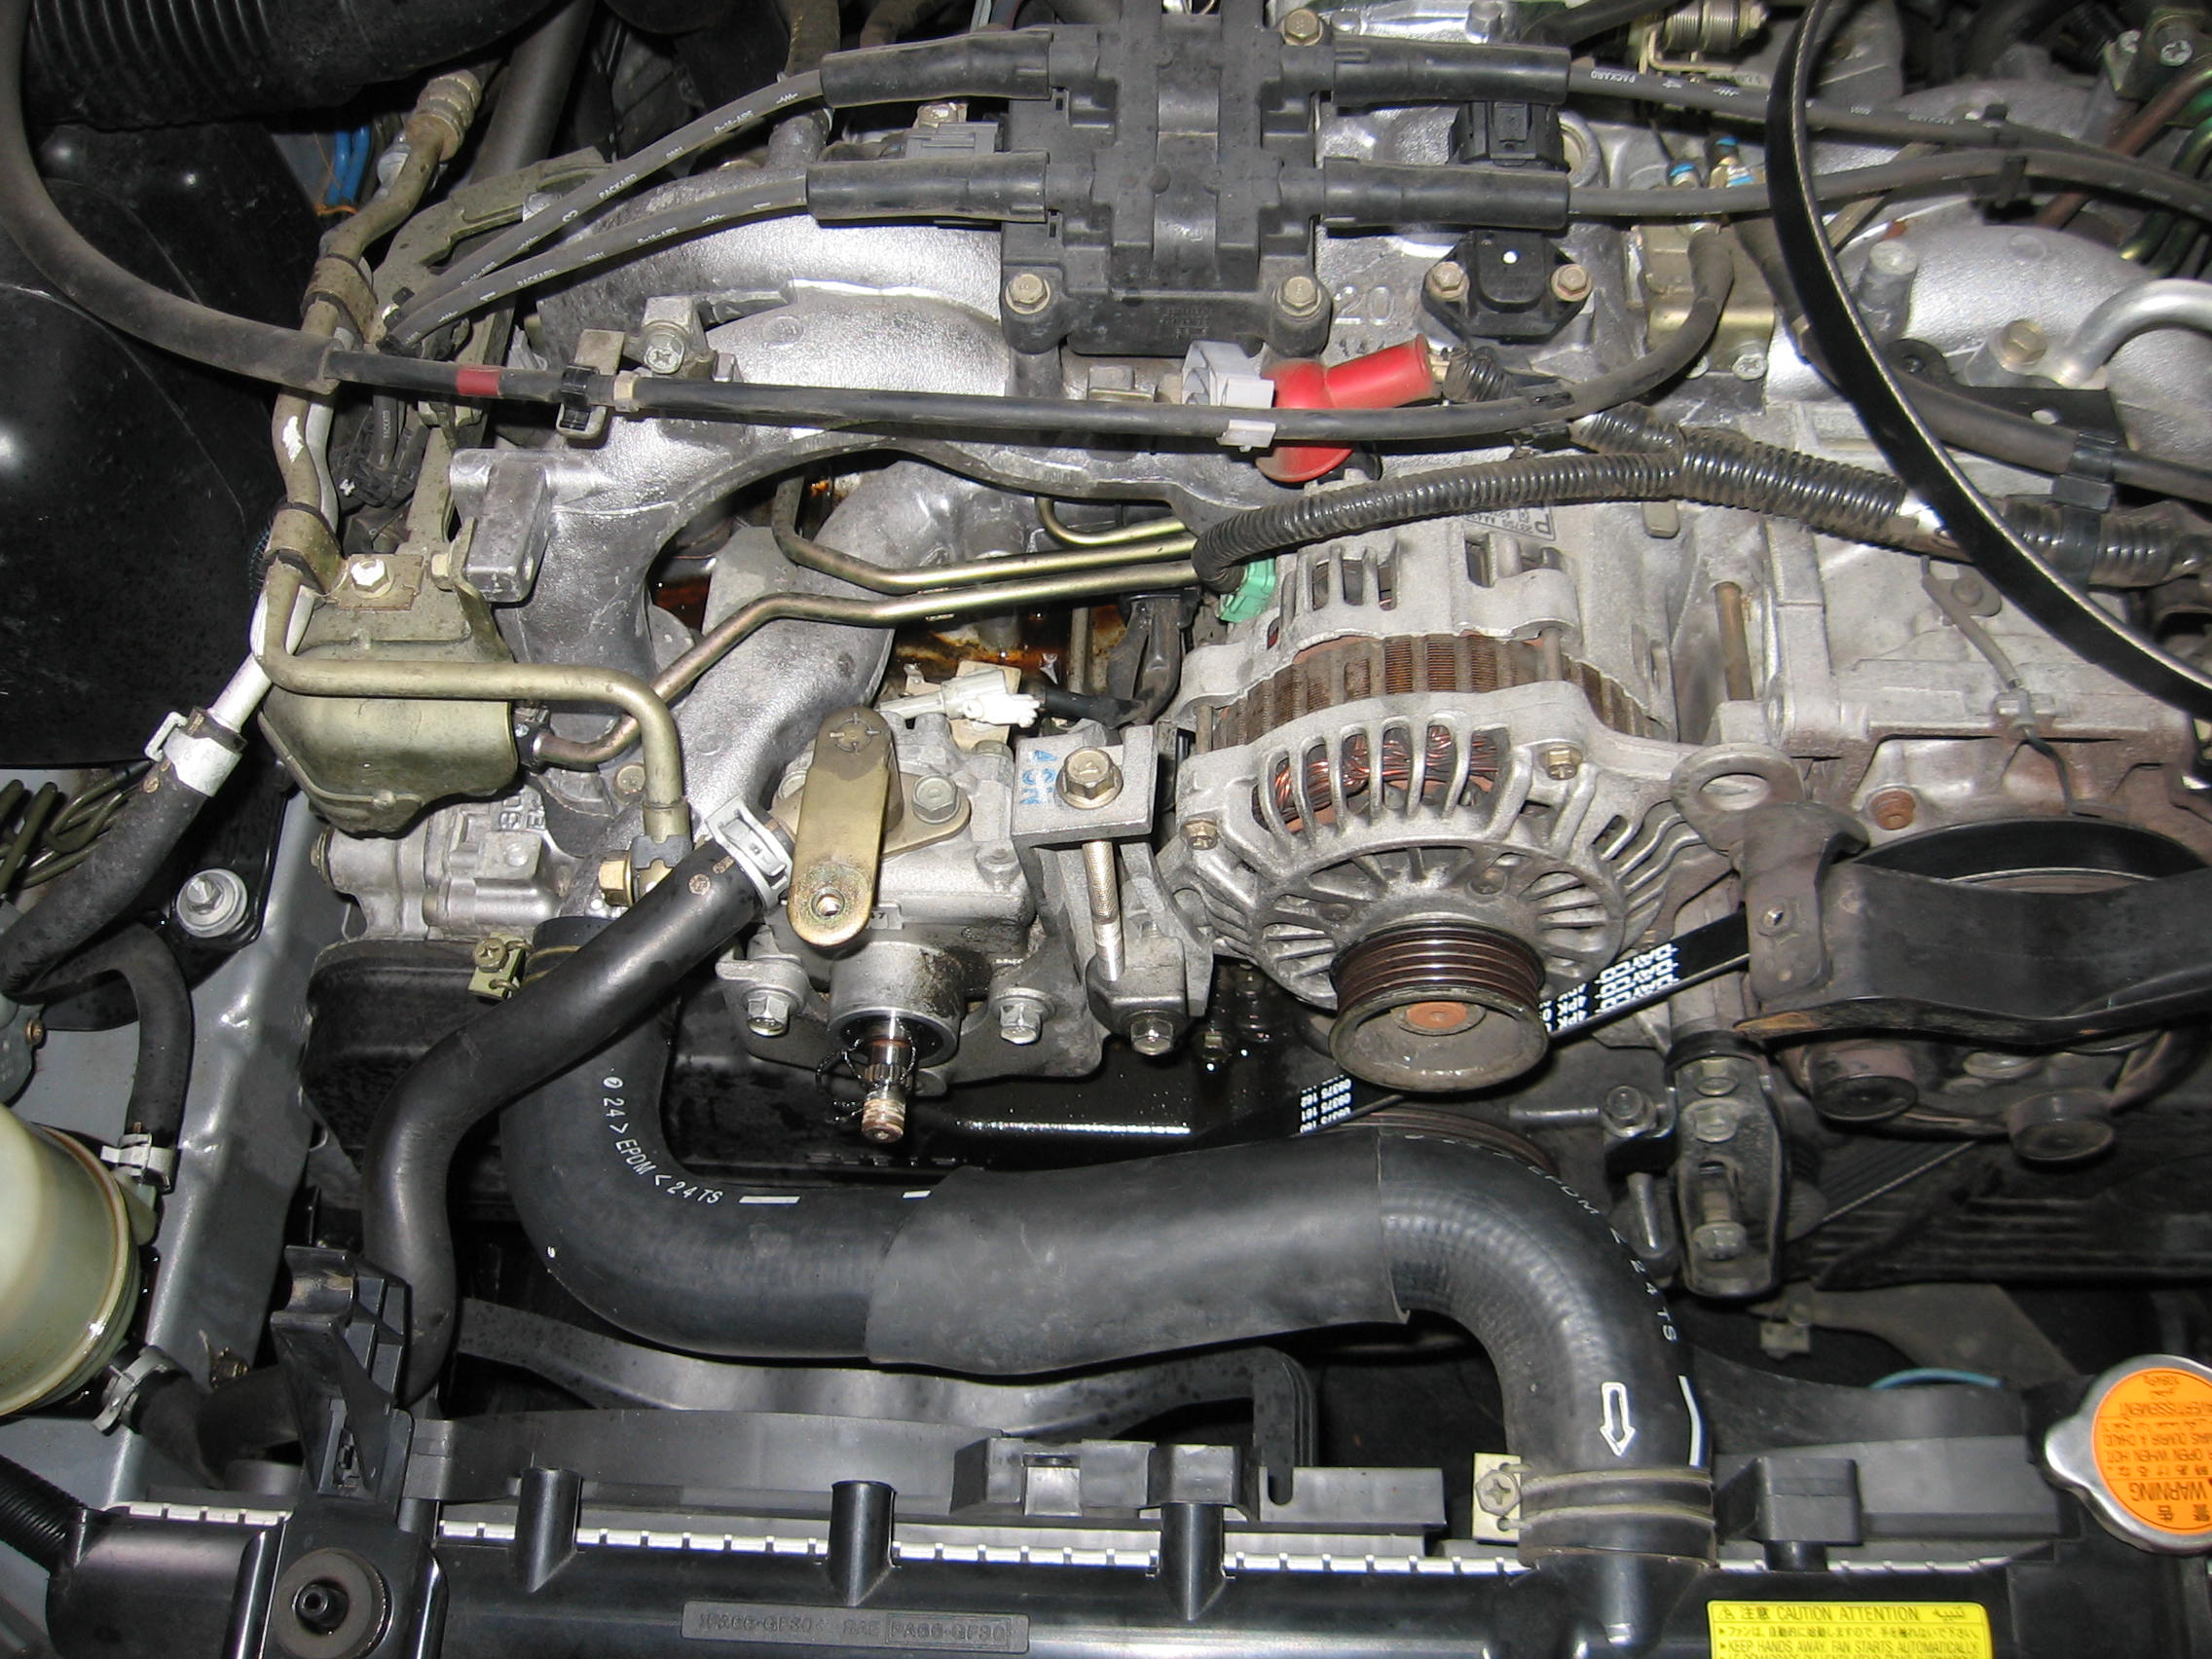 subaru-impreza-engine-bay-with-power-steering-pump-belt-missing-ultimate-power-steering..jpg